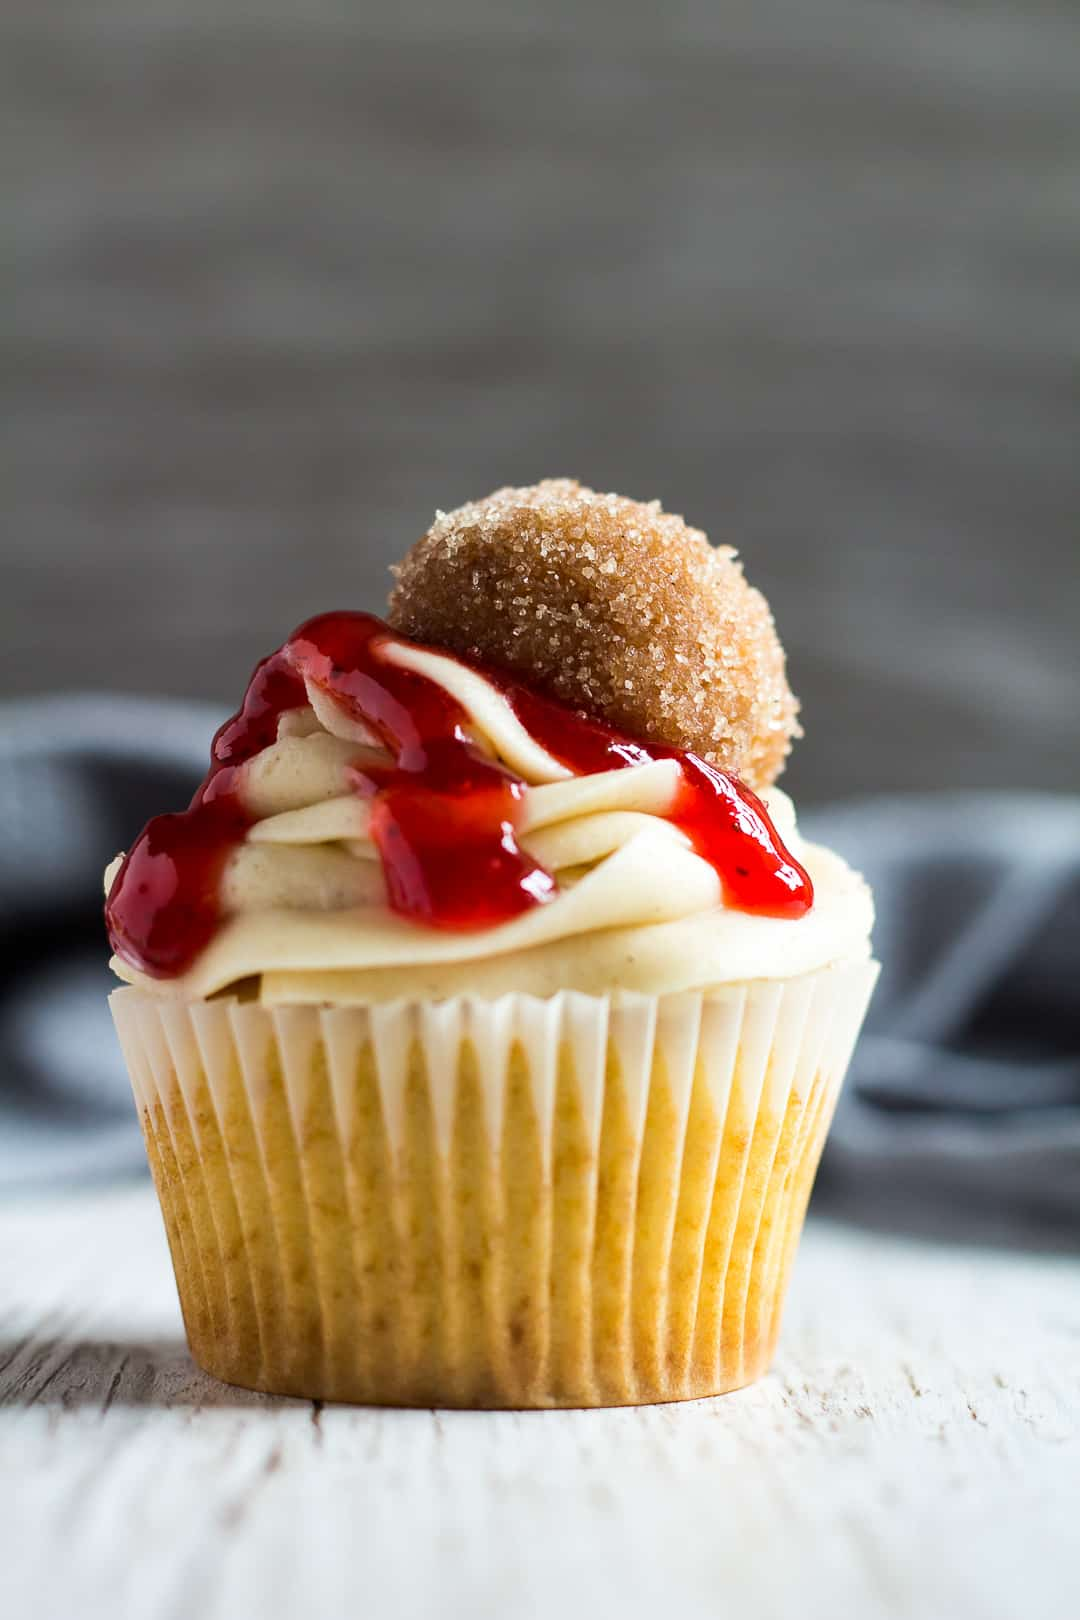 A close-up shot of a single frosted Jam Doughnut Cupcake. Drizzled with runny jam and a doughnut hole.